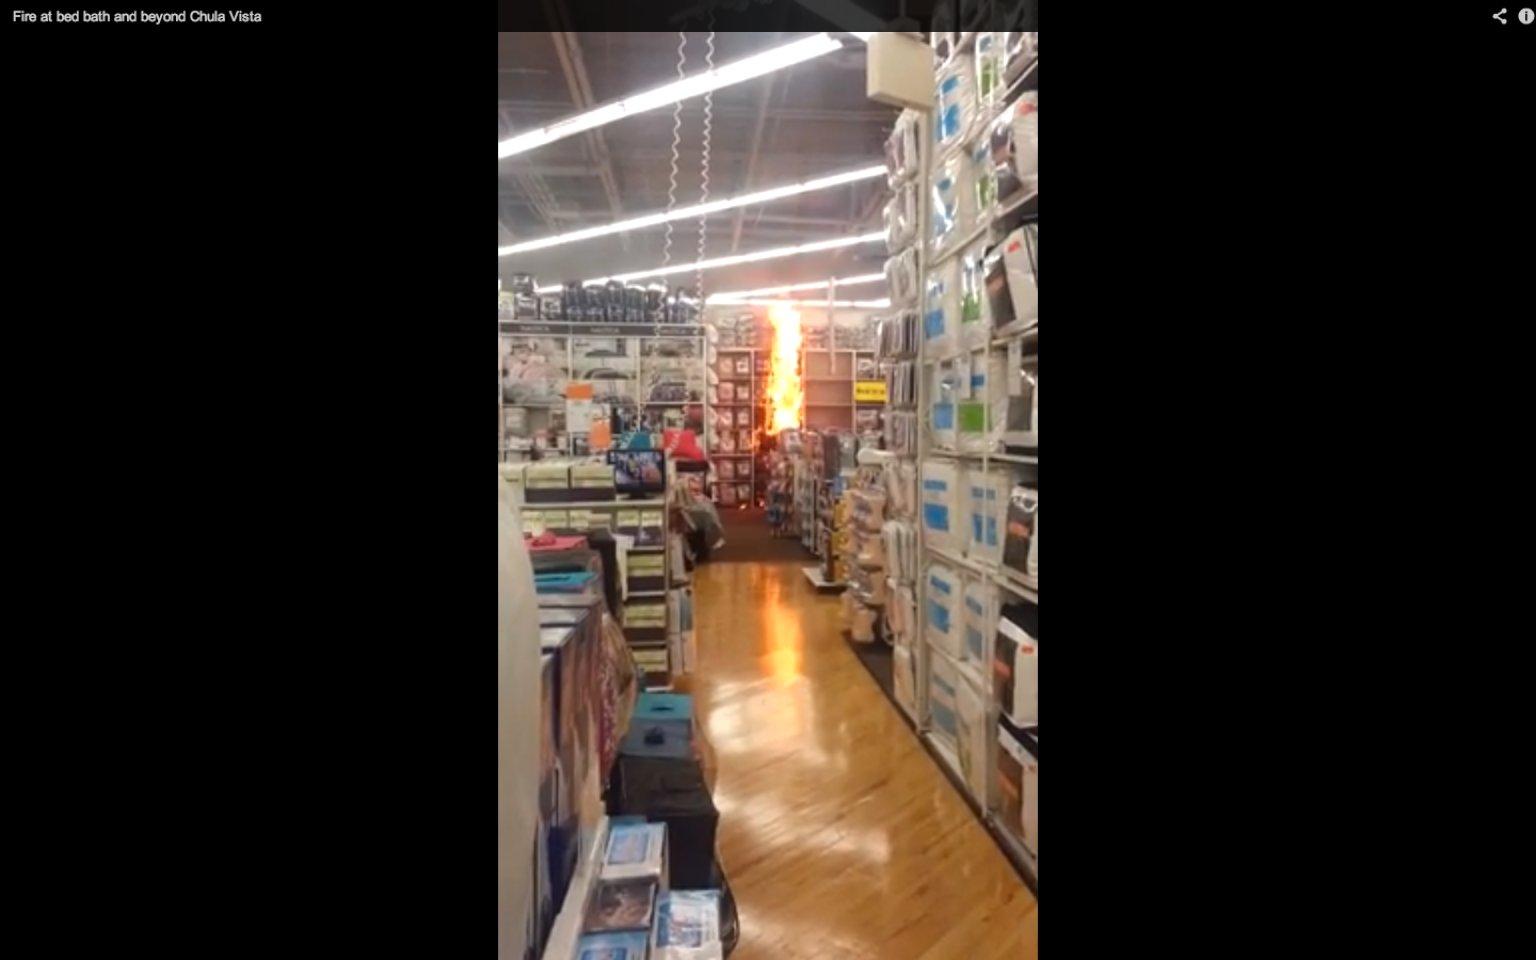 bed bath and beyond fire caught on tape by customer video. Black Bedroom Furniture Sets. Home Design Ideas